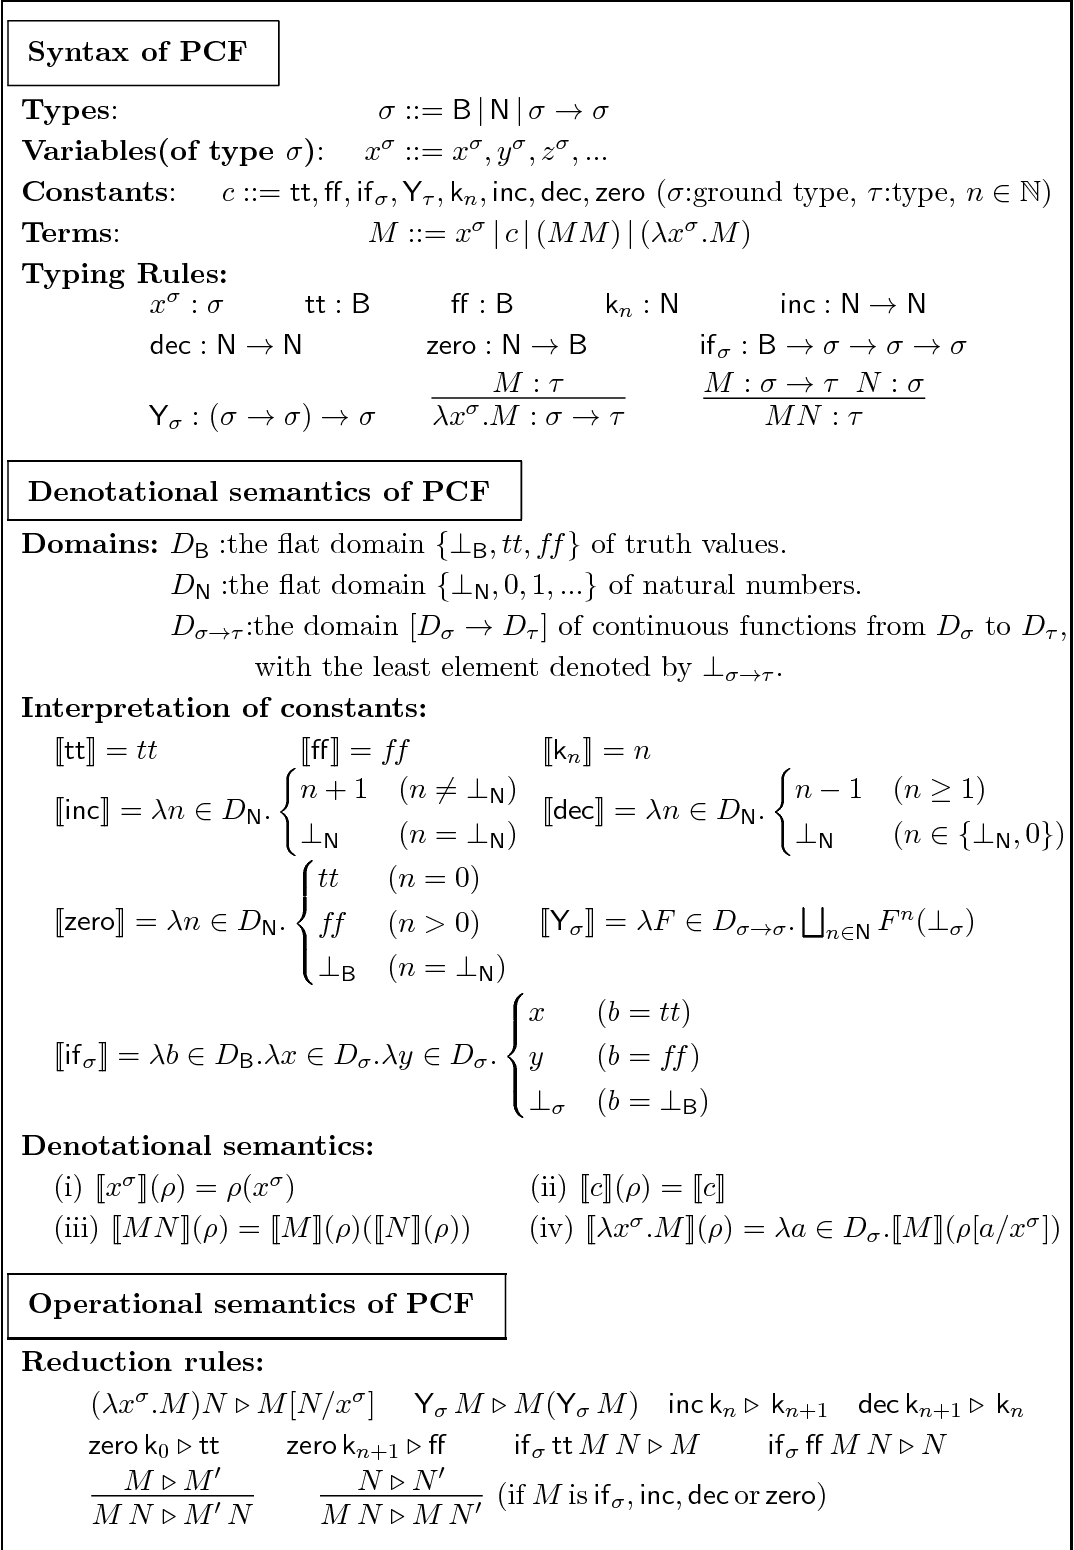 A Stream Calculus of Bottomed Sequences for Real Number